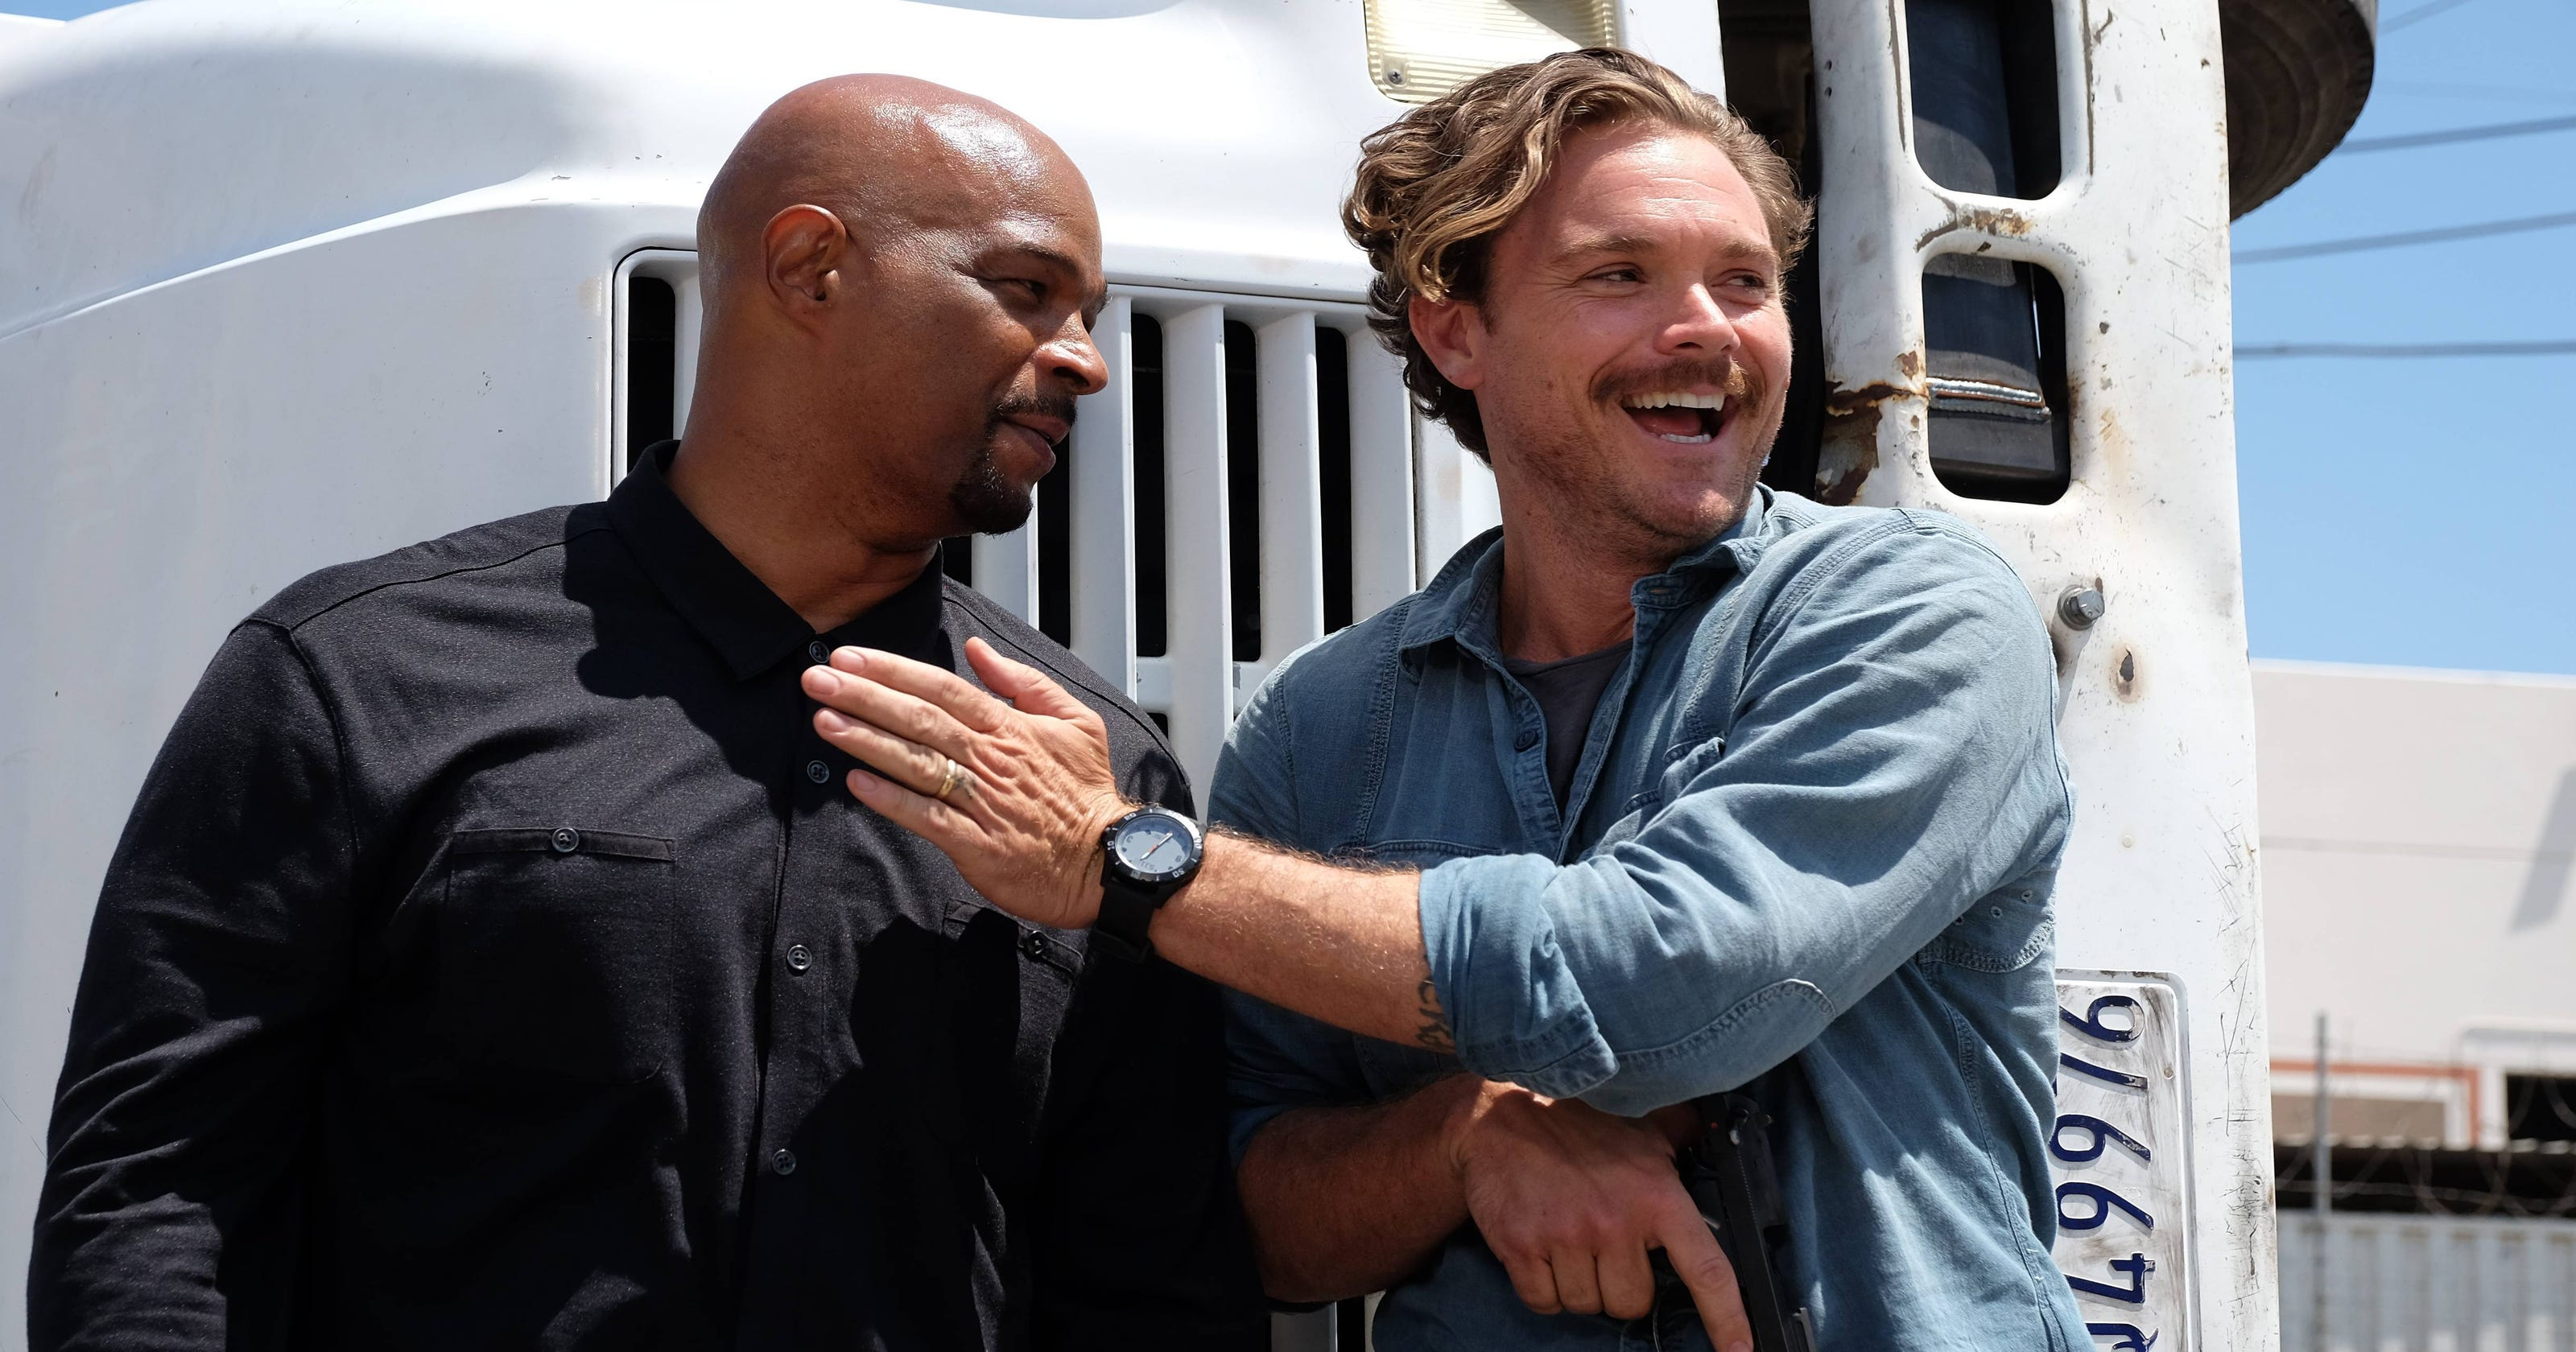 lethal weapon s clayne crawford physically abusive says damon wayans